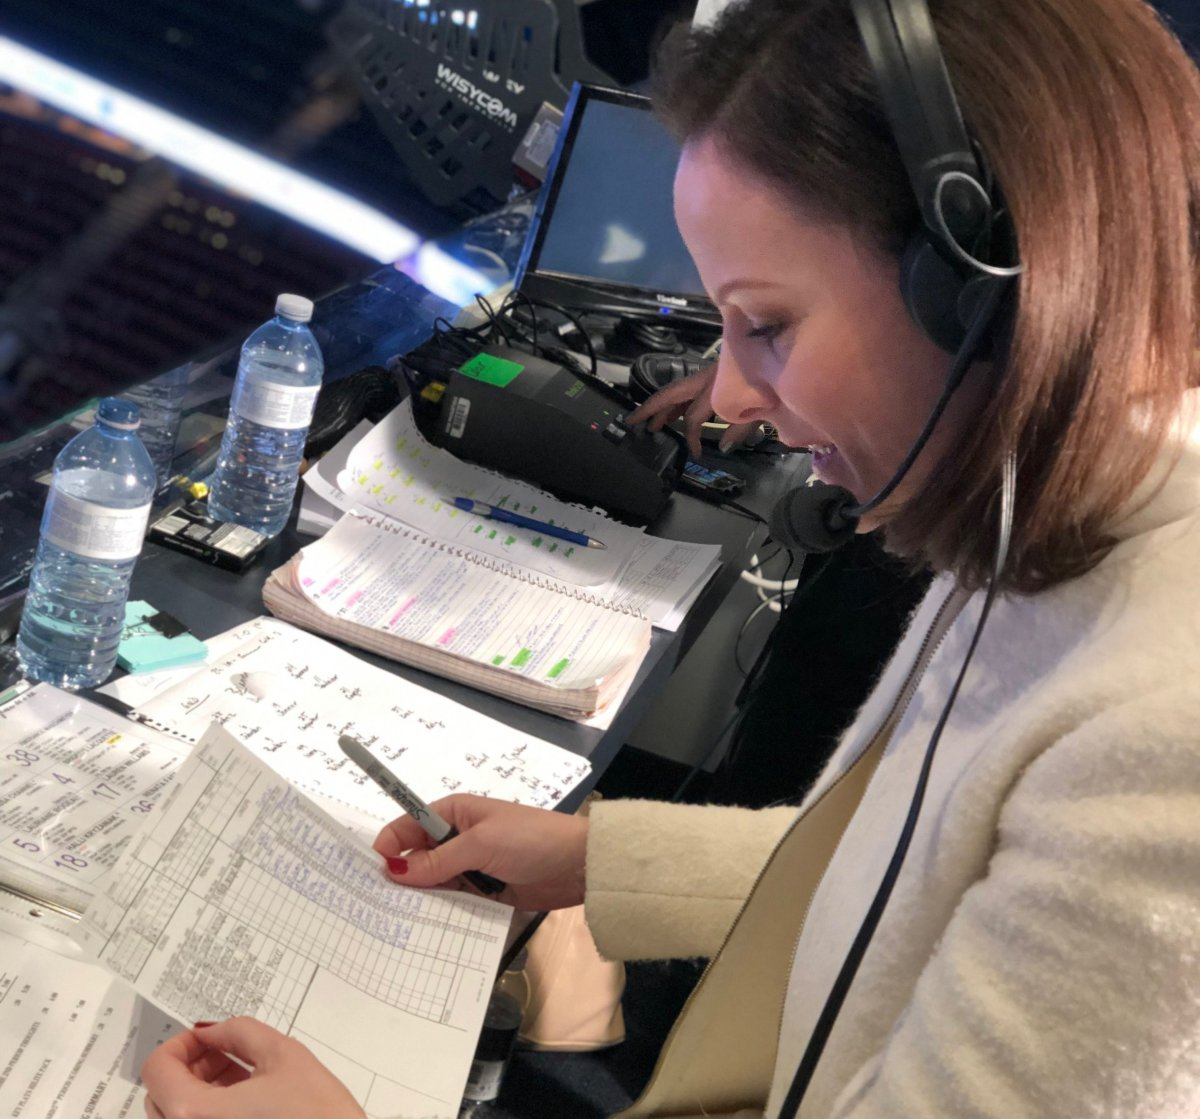 680 CJOB hockey analyst and Rogers Sportsnet play-by-play broadcaster Leah Hextall recapping the scoring plays of the CWHL All-Star Game at Scotiabank Arena in Toronto.